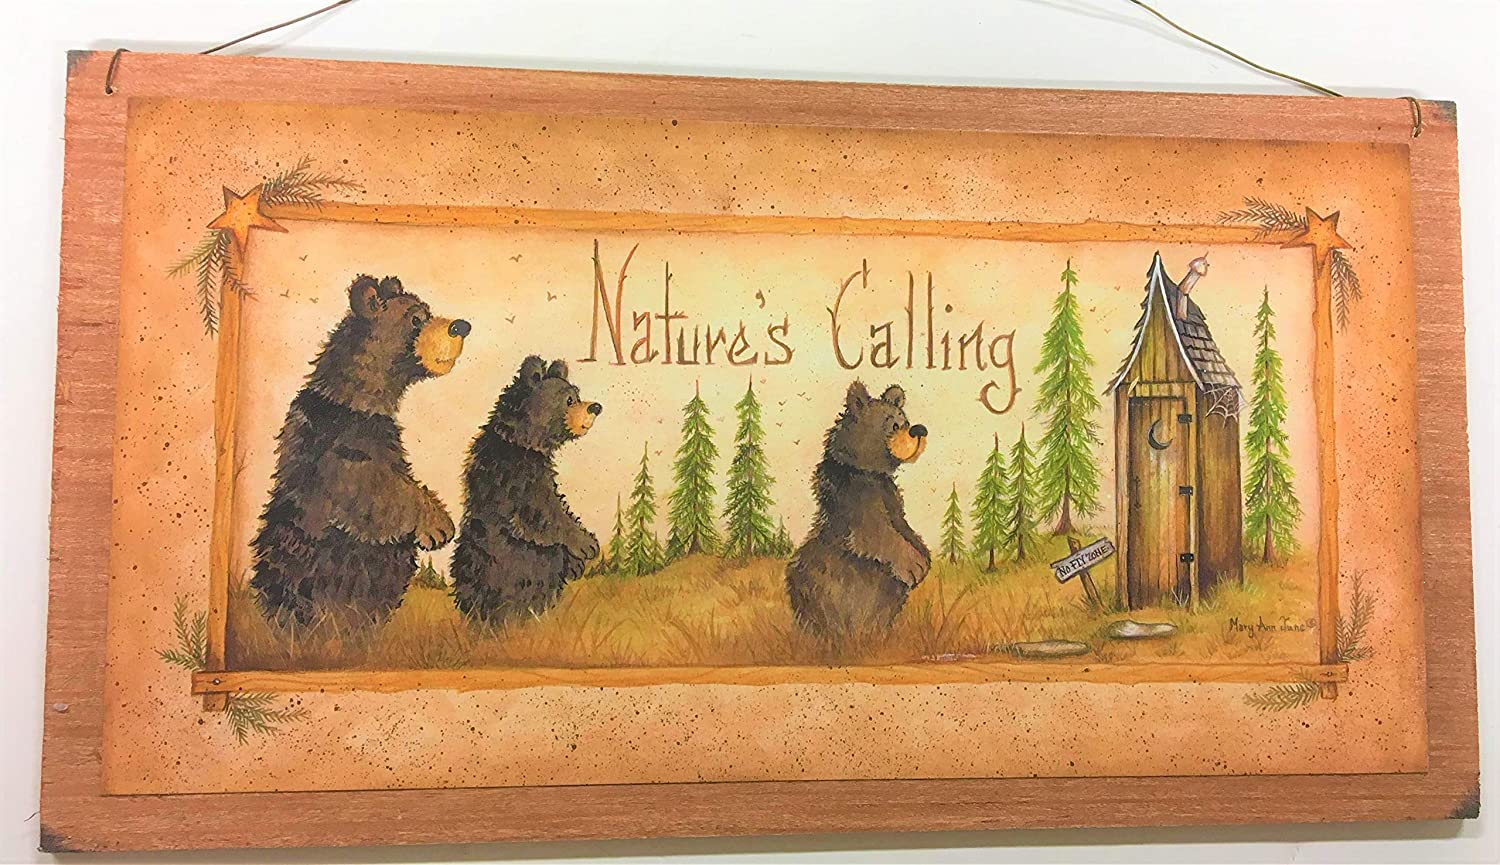 Amazon.com: Natures Calling Country Bathroom Sign Outhouse Lodge ...